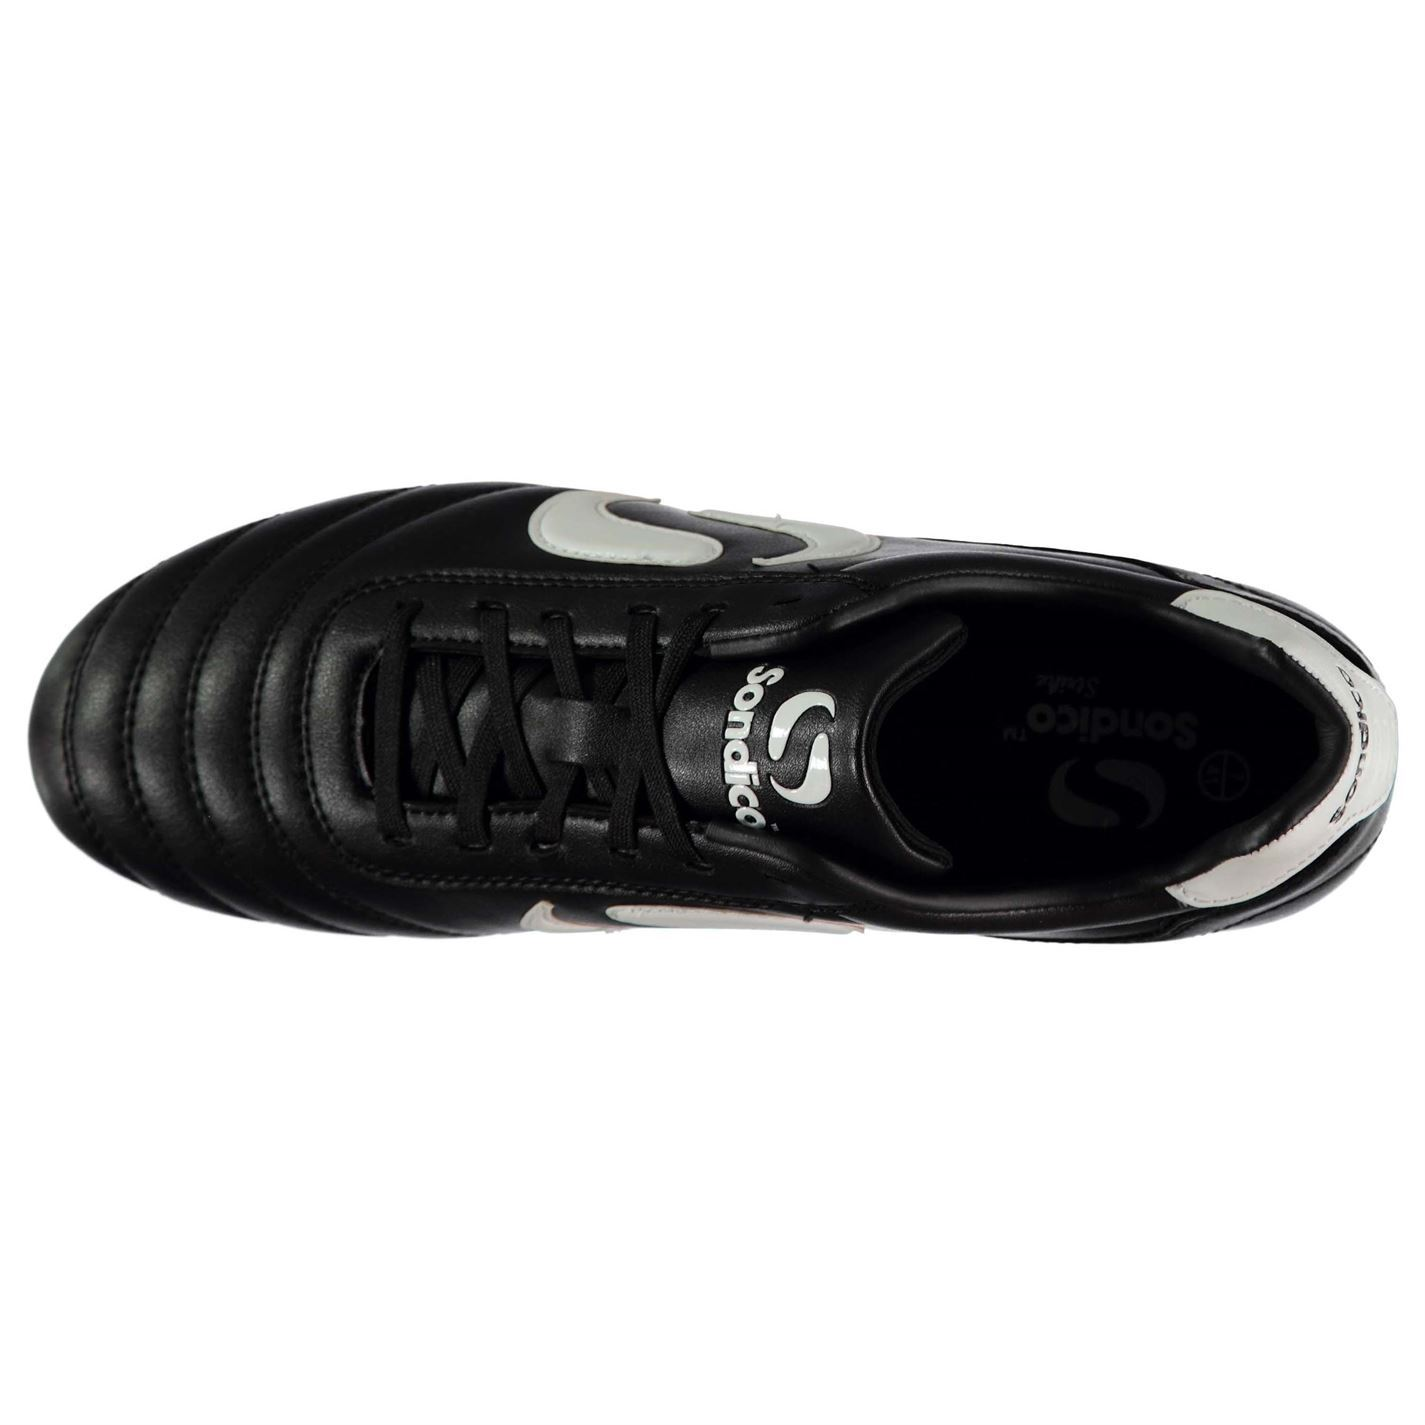 Sondico Strike Firm Ground Football Boots Mens Black//White Soccer Shoes Cleats